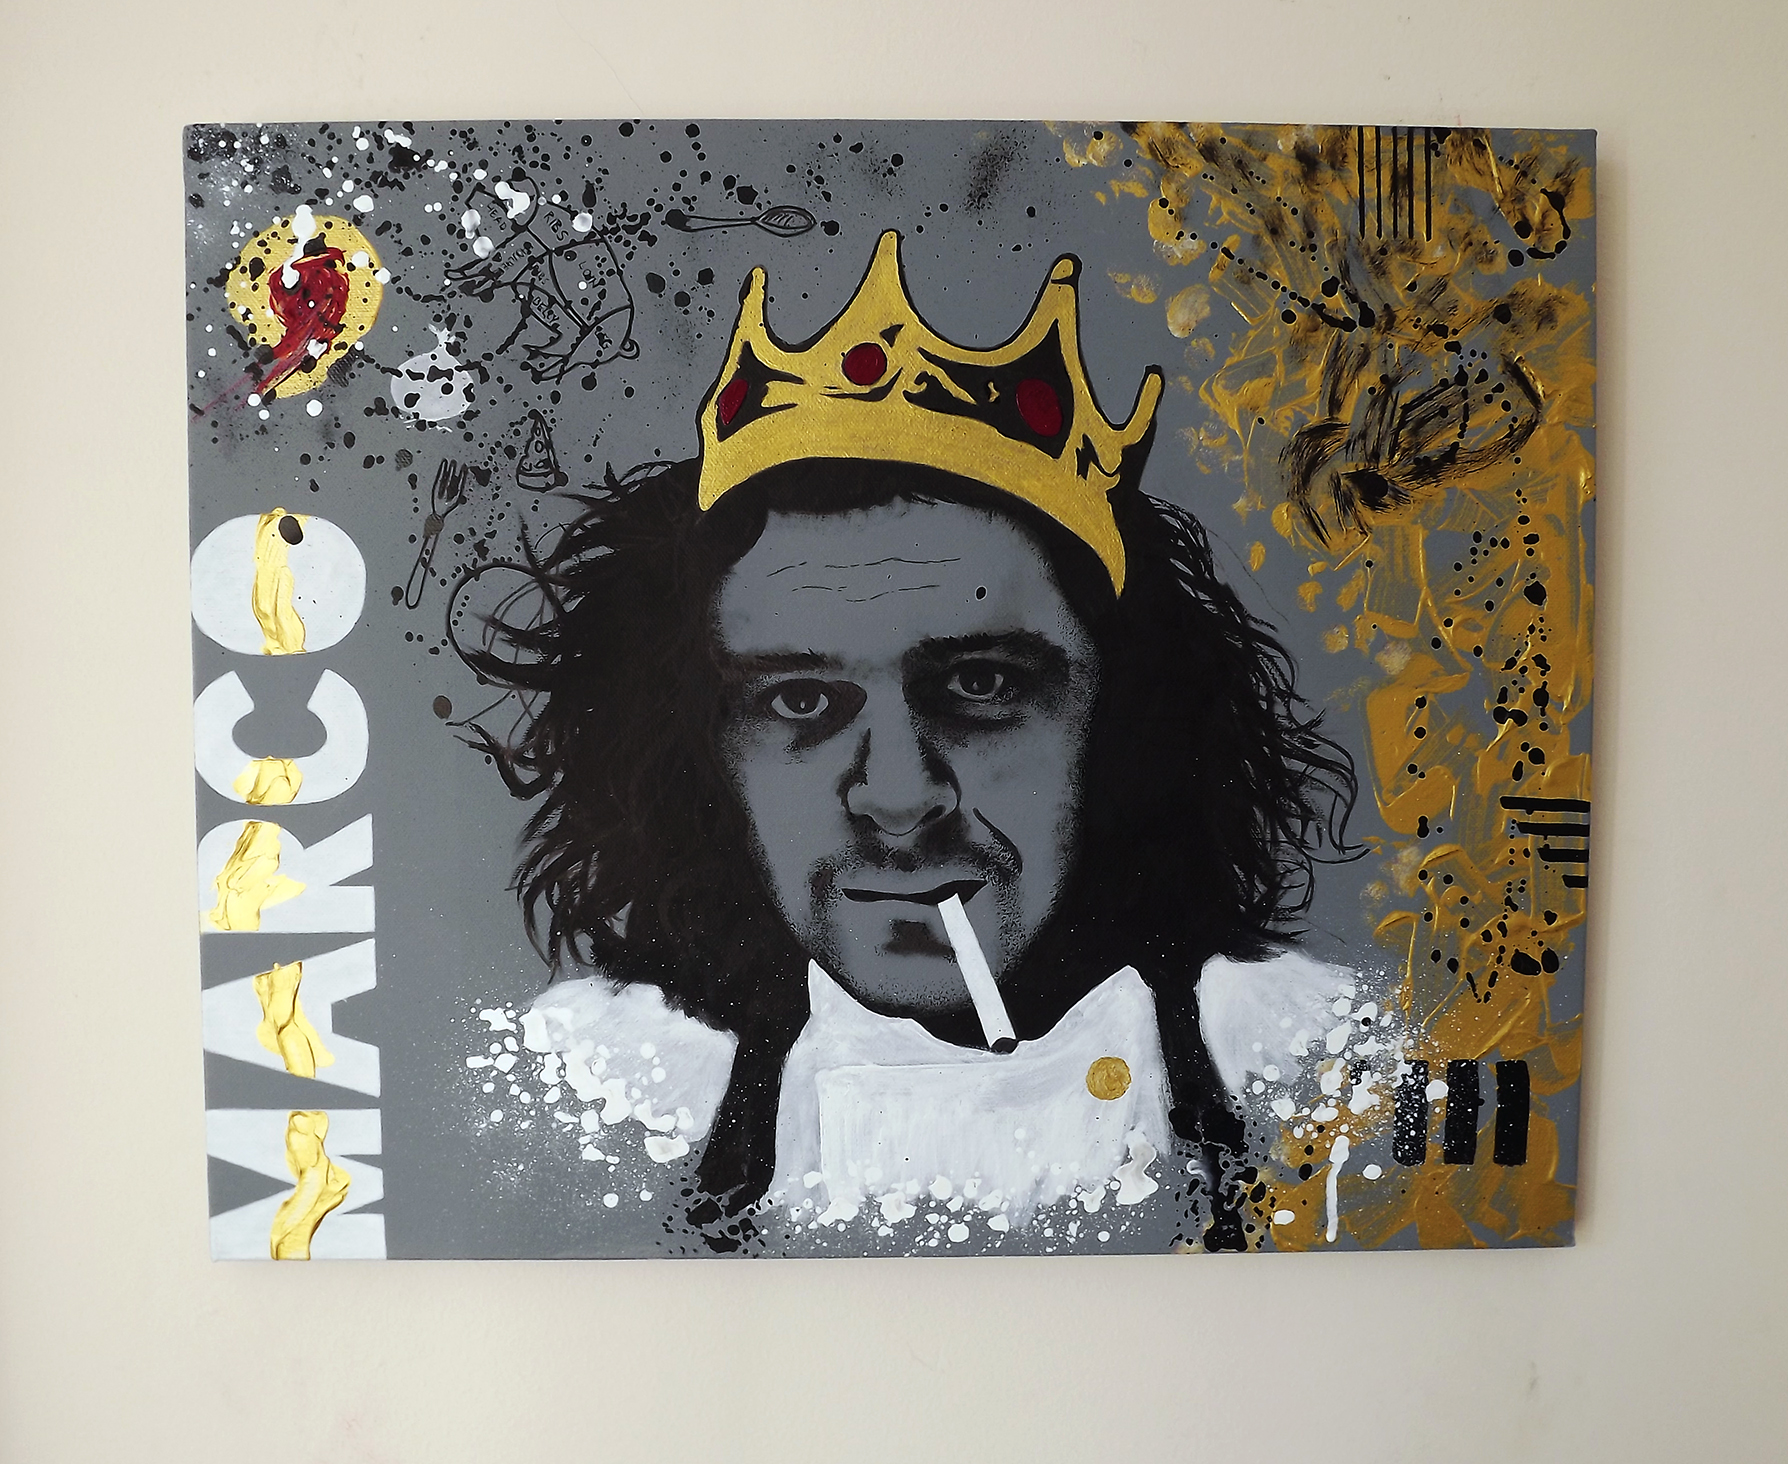 Marco Pierre White pop art portrait 4.jpg